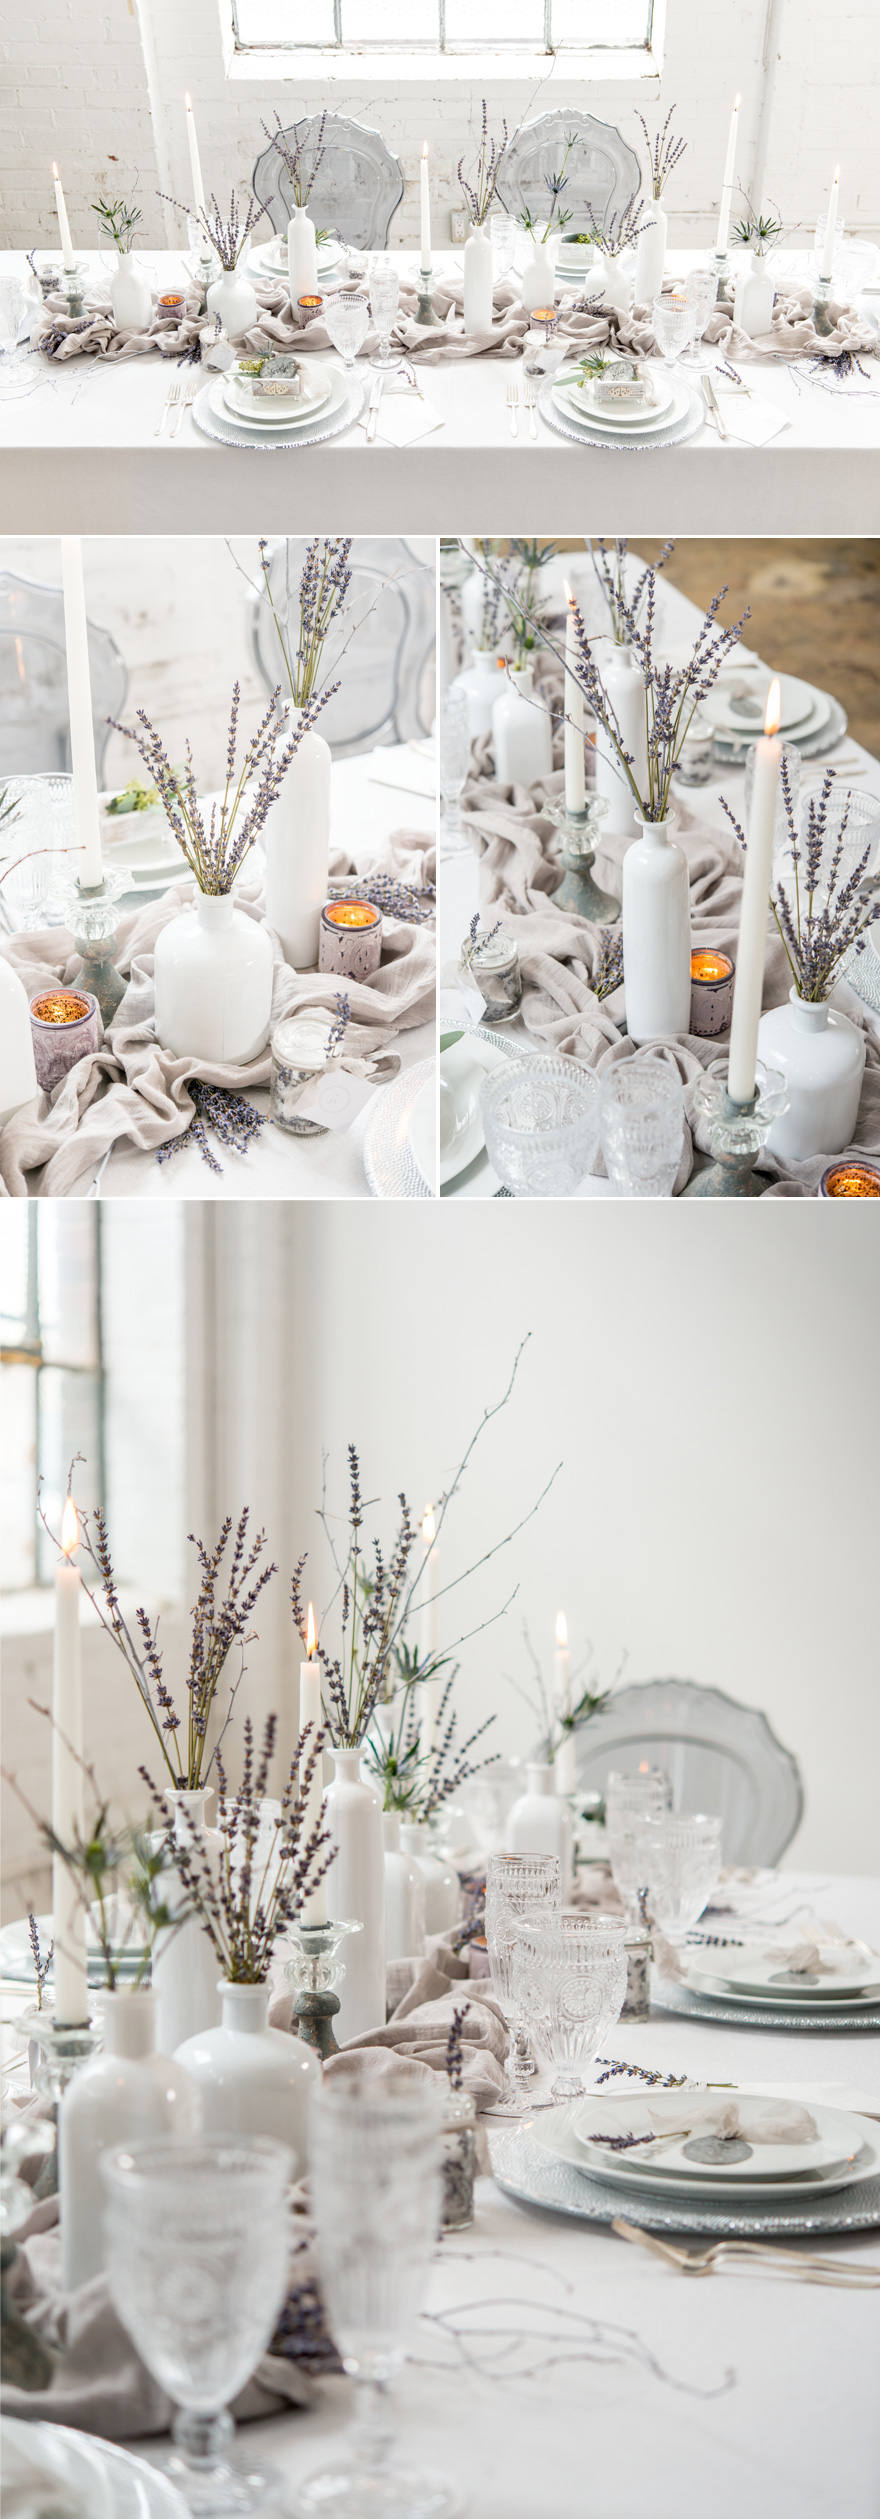 50 Stunning DIY Wedding Centrepieces - Ideas and Inspiration -  Confetti.co.uk